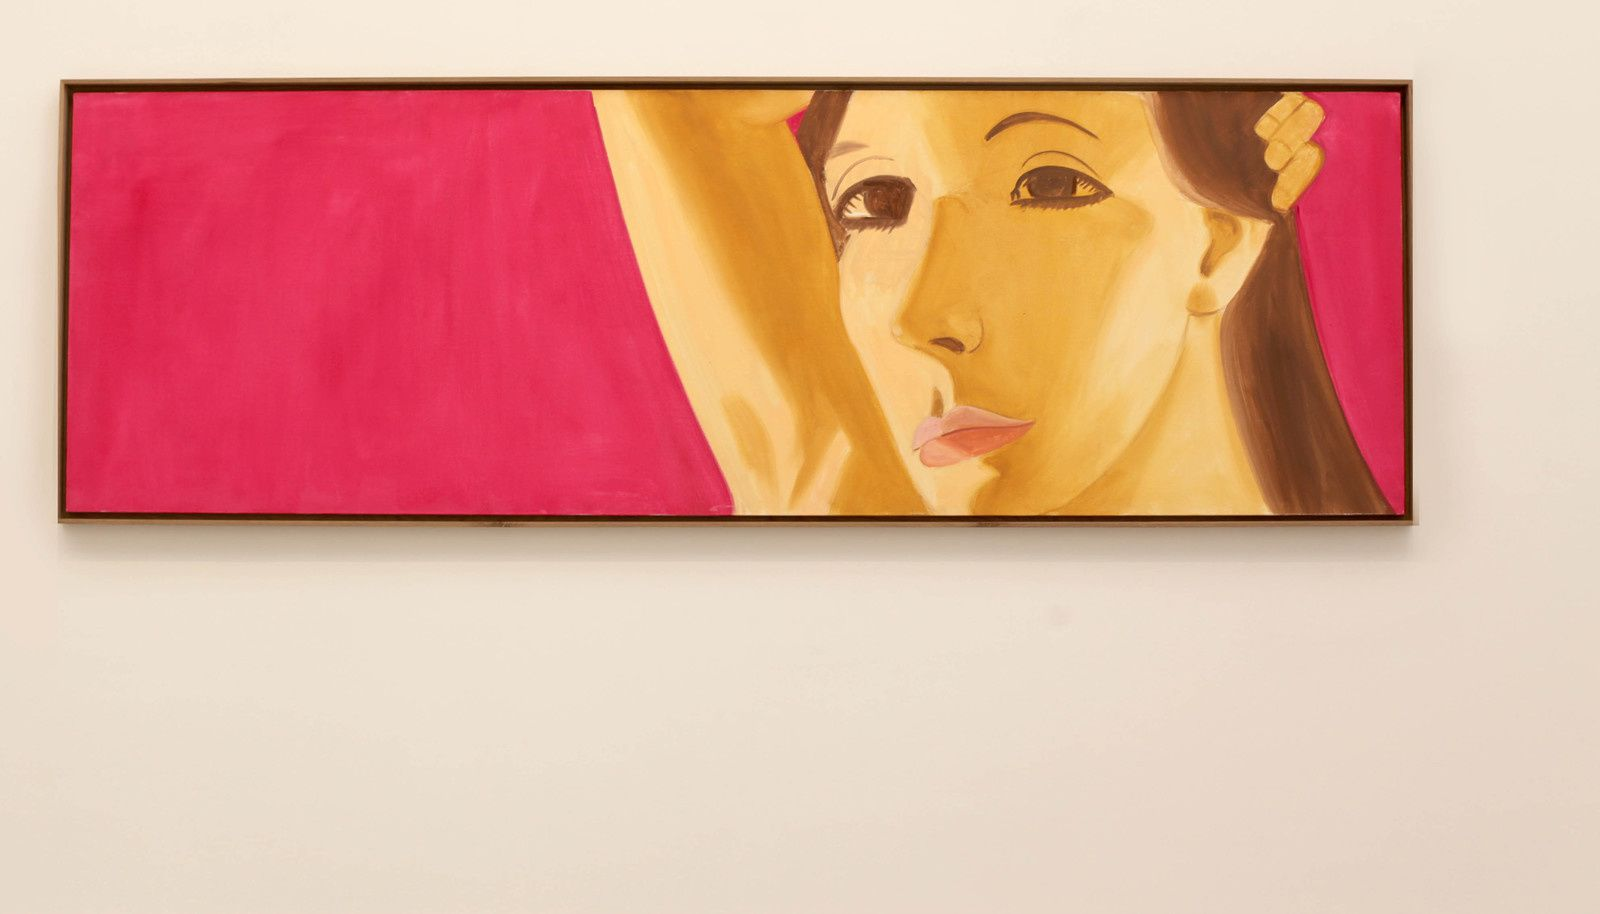 """Red Dancer 10"", 2018 de Alex KATZ - Courtesy Galerie Thaddaeus Ropac © Photo Éric Simon"